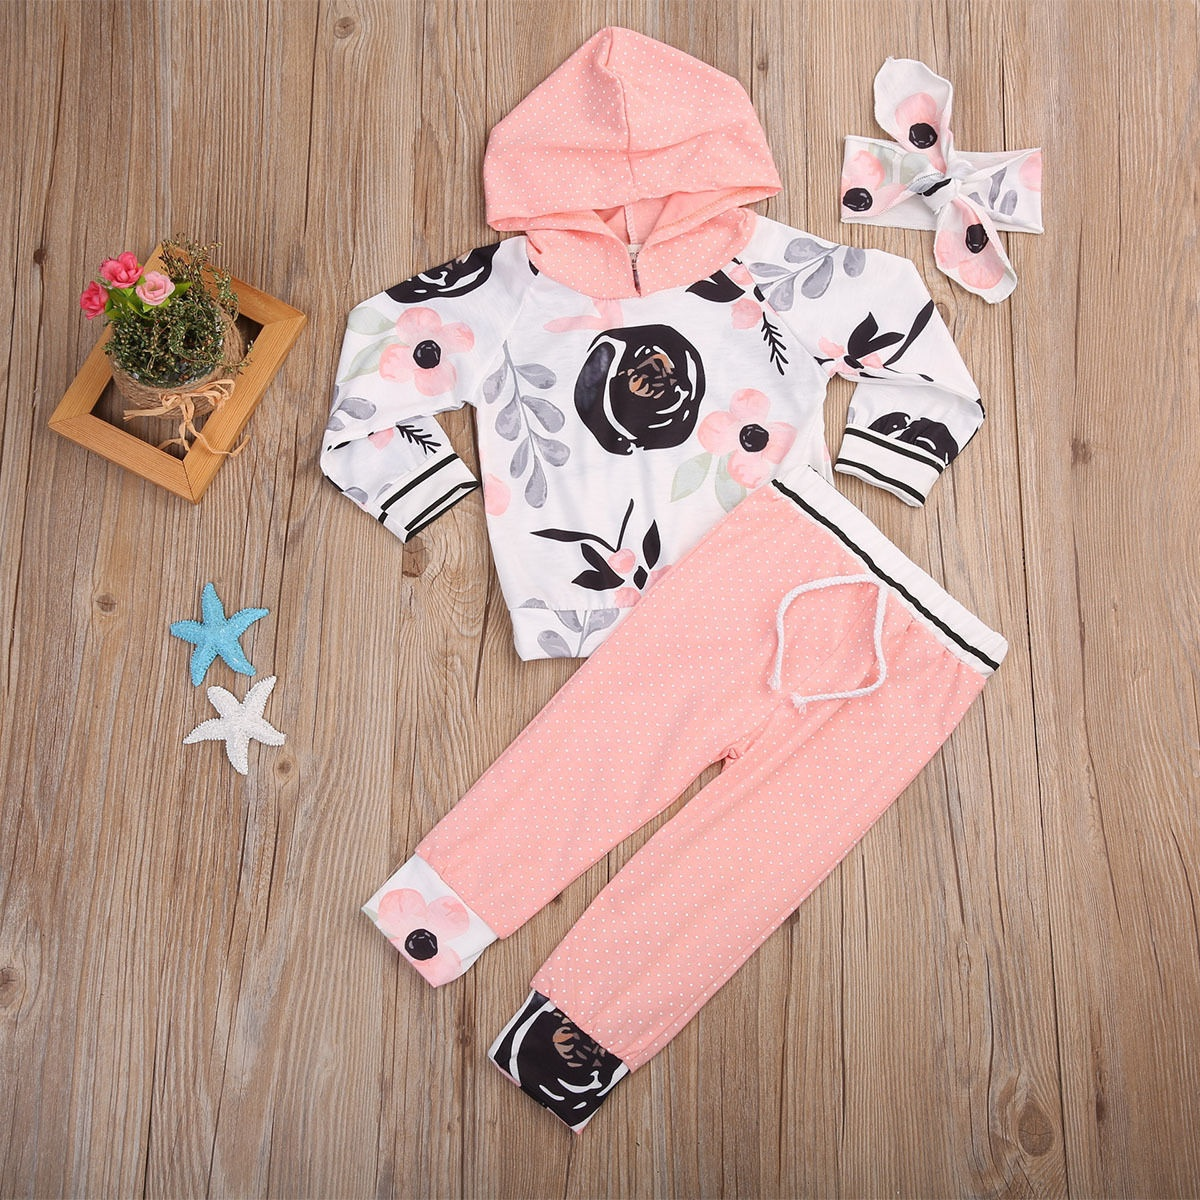 3pcs Cute Toddler Infant Newborn Baby Boy Girl Outfit Soft Catton Fashion  Baby Girl T,shirt Tops+Pants Outfits Set Clothes